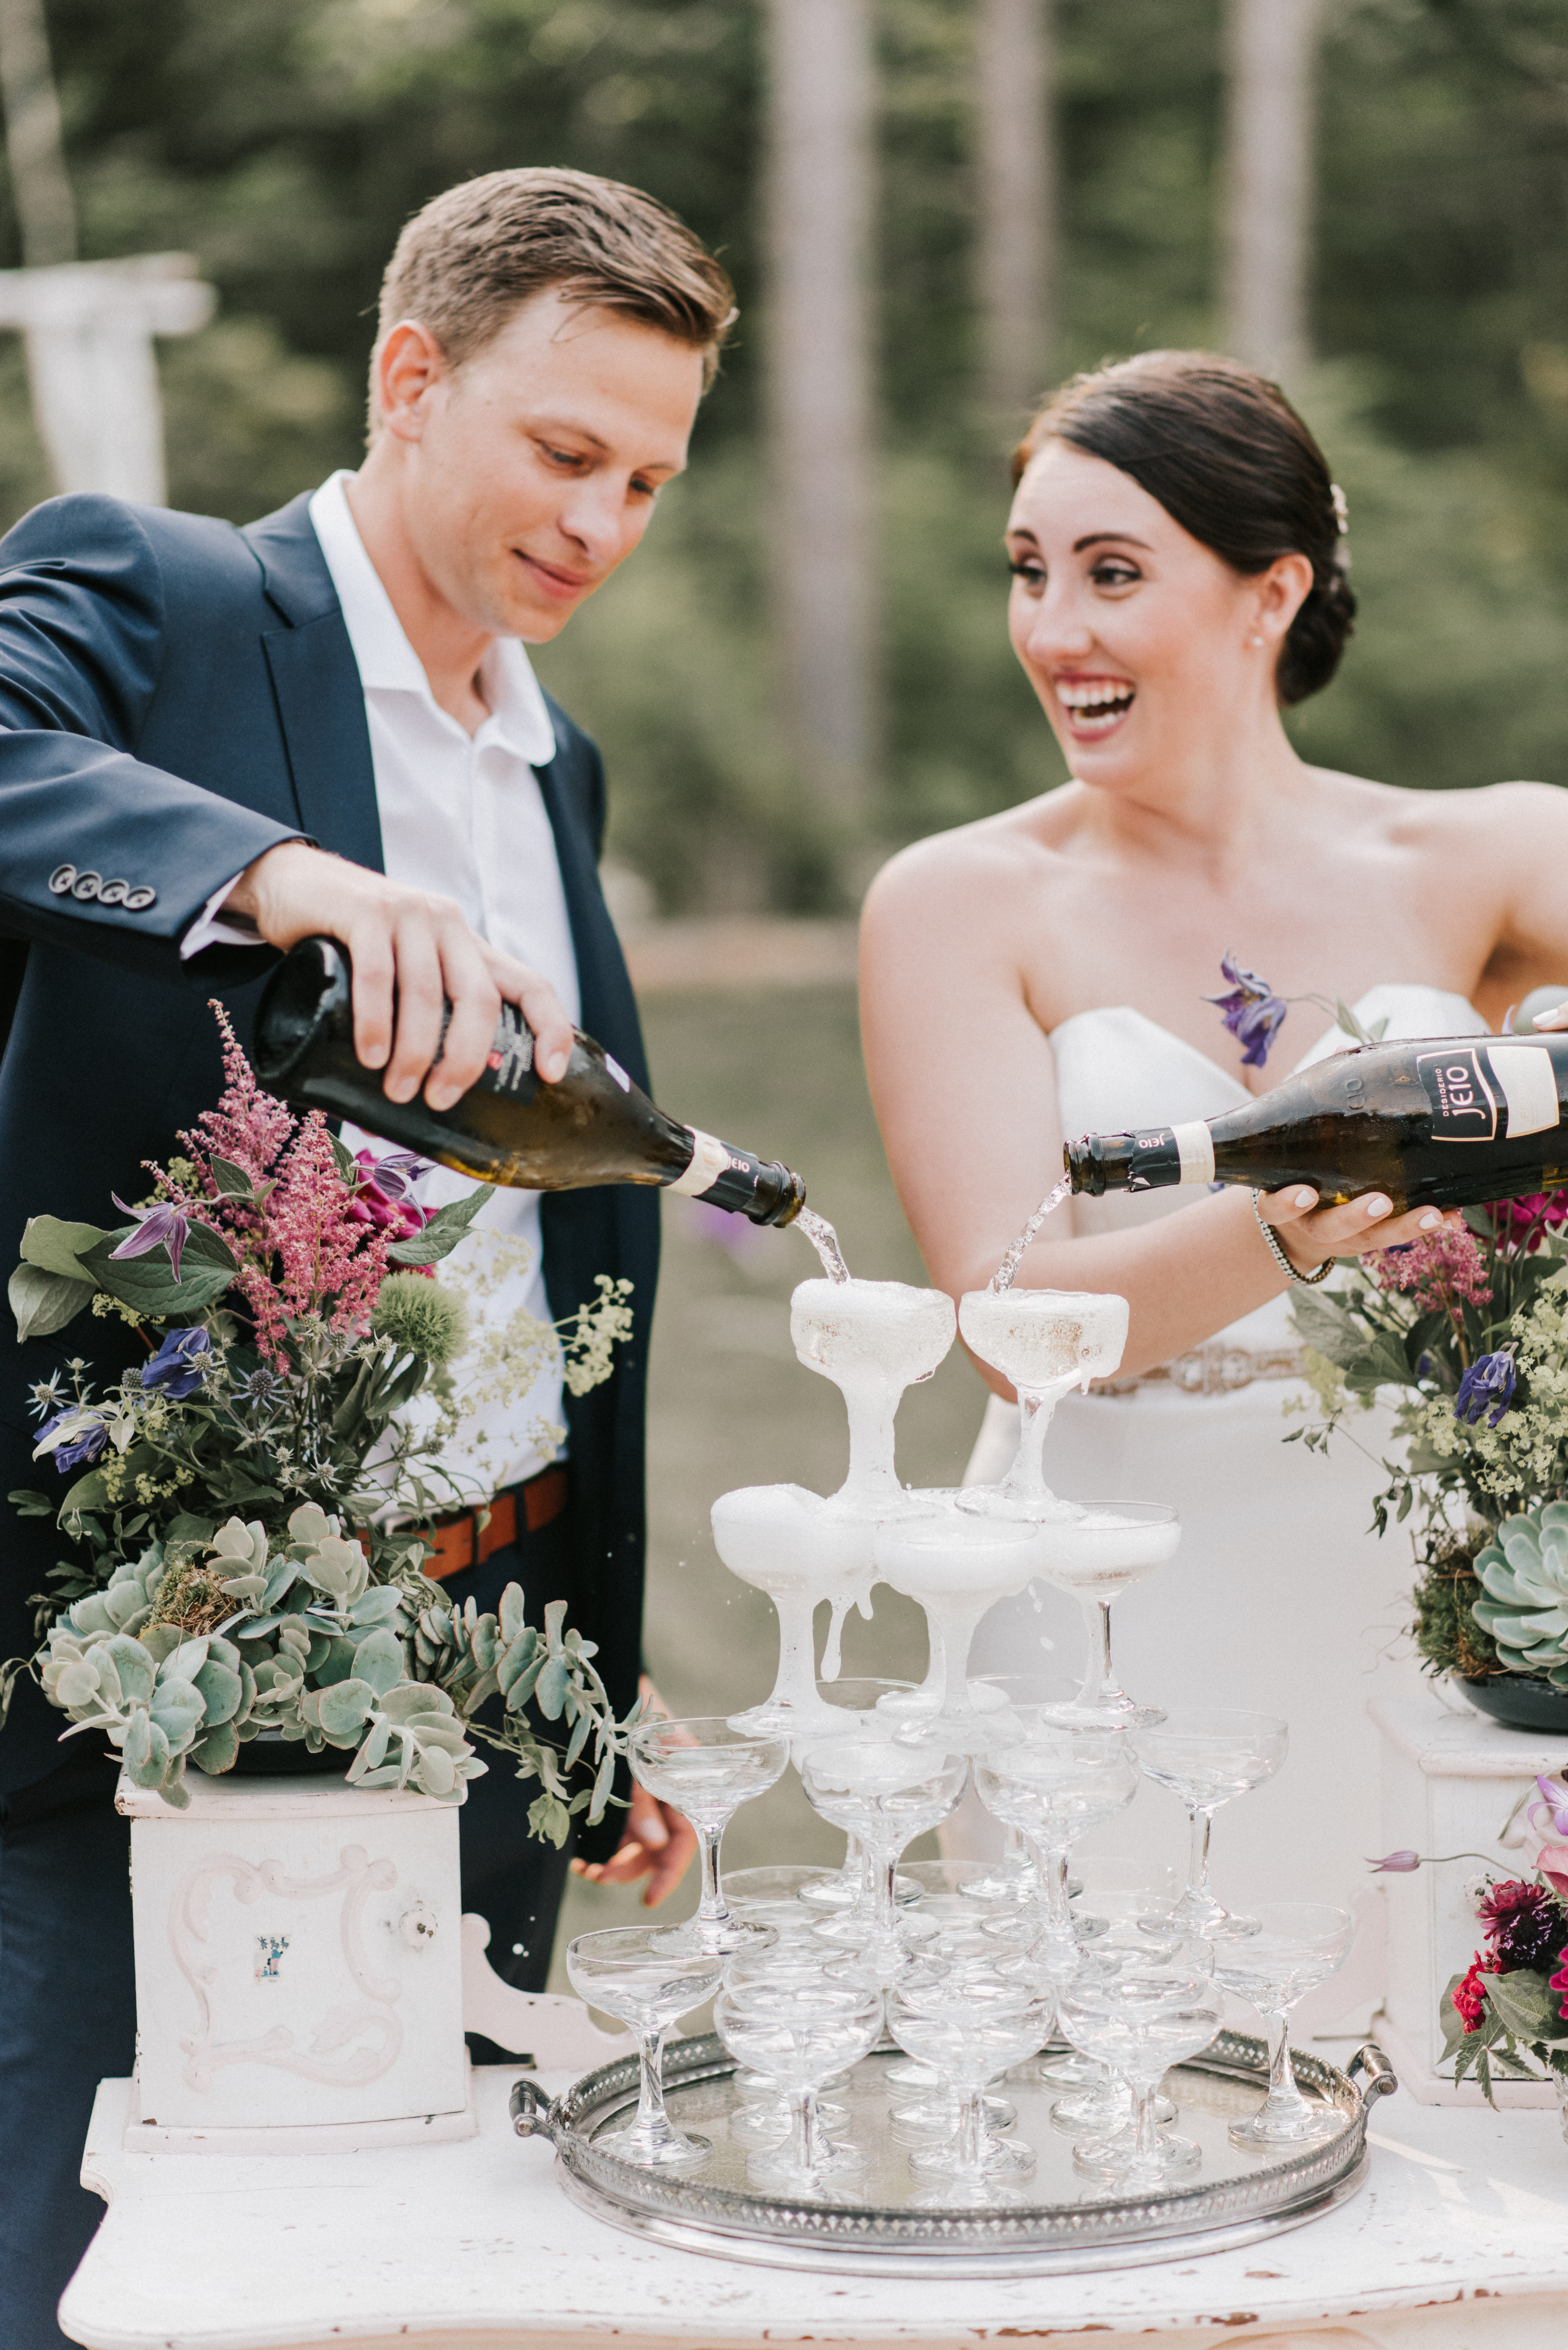 Bride and Groom pouring champagne at Hidden Pond Wedding in Kennebunkport, Maine